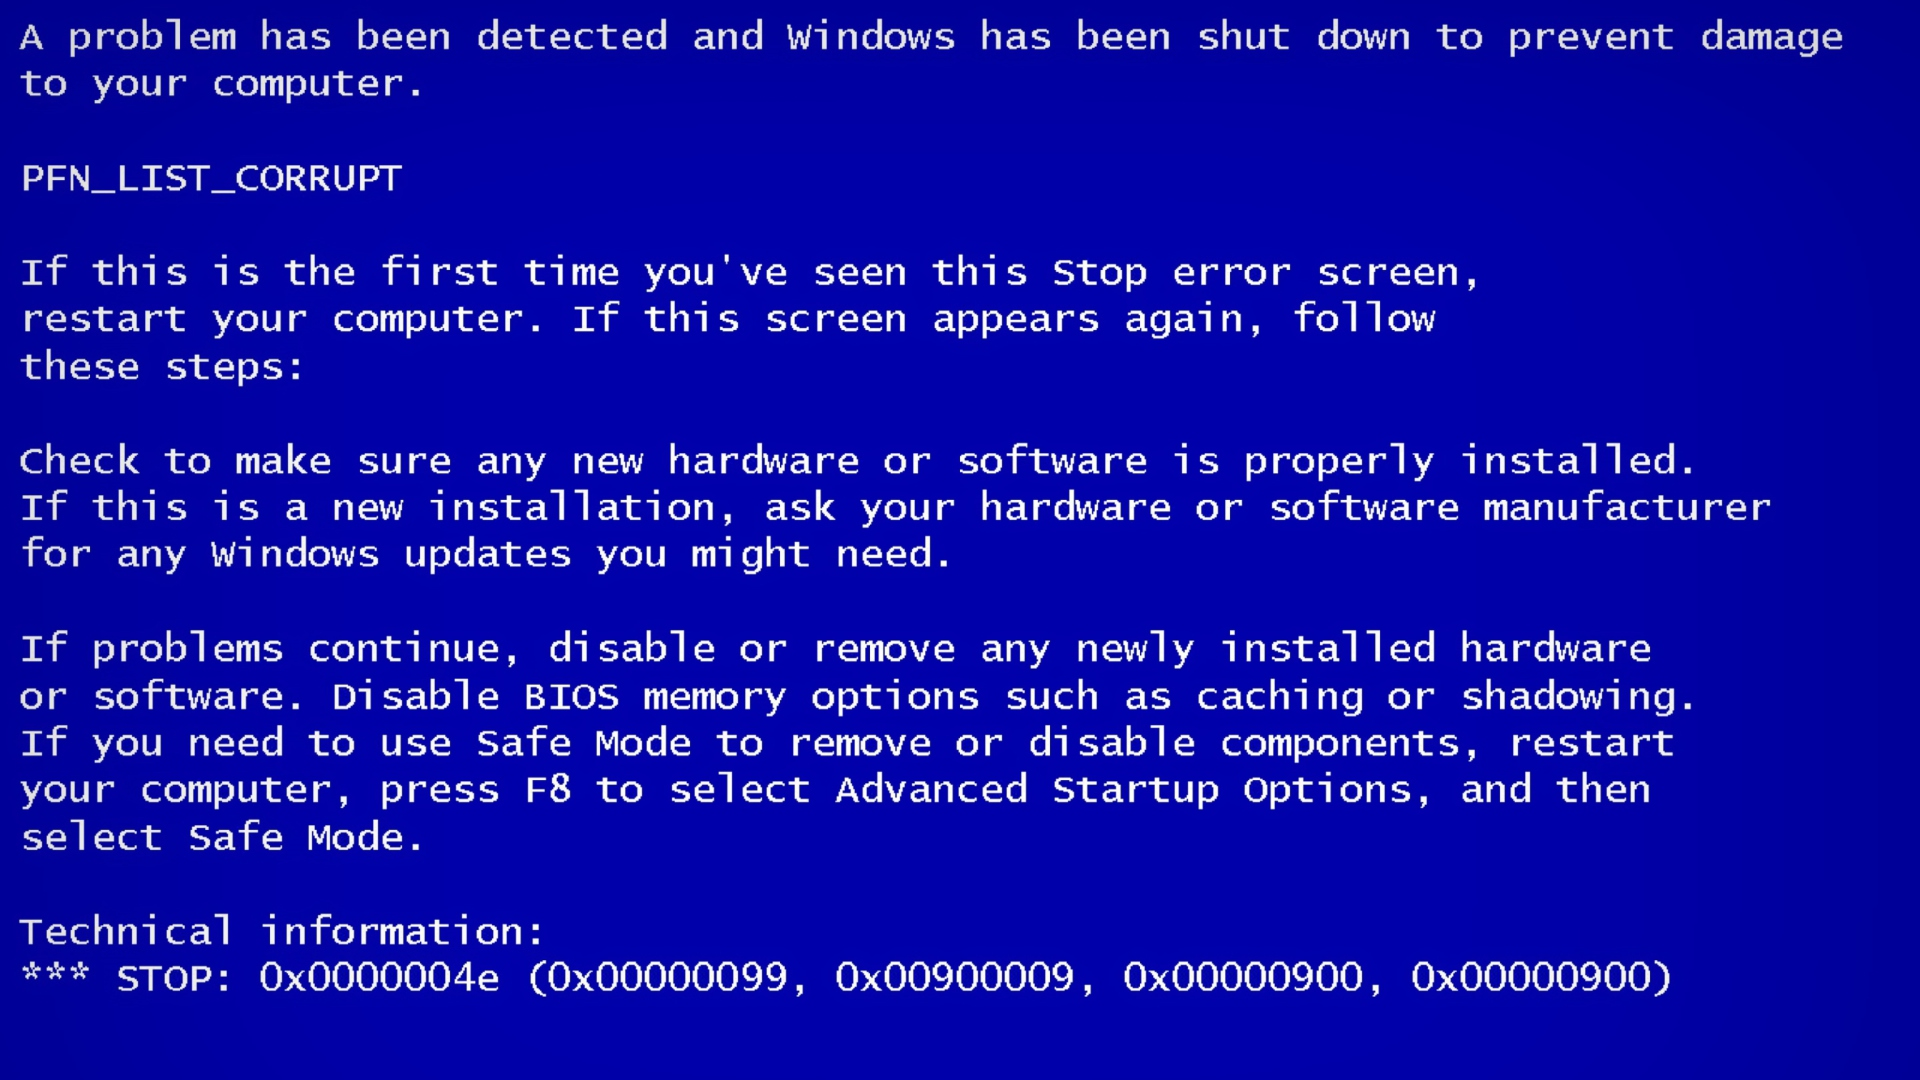 Blue Screen Of Death Wallpaper For Desktop 1920x1080 Full Hd